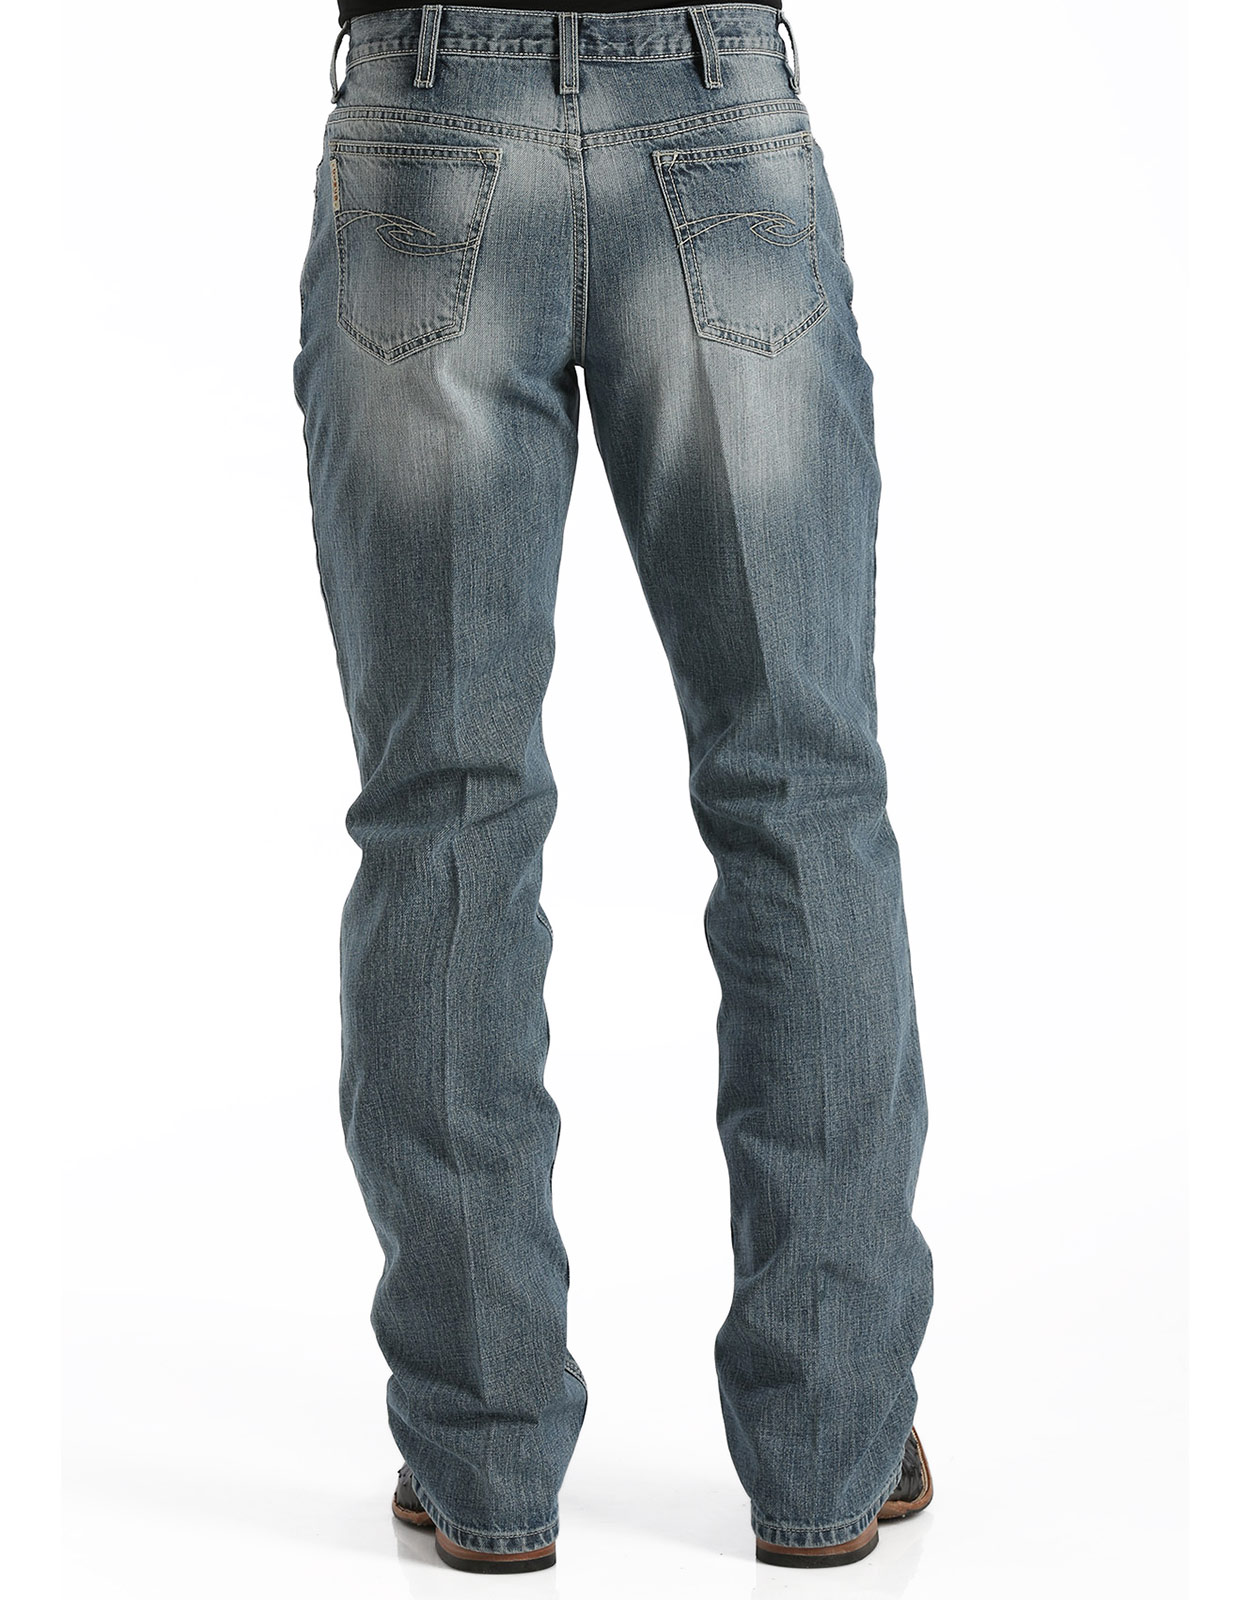 Cinch Men's Dooley Mid Rise Relaxed Fit Boot Cut Jeans - Medium Stonewash